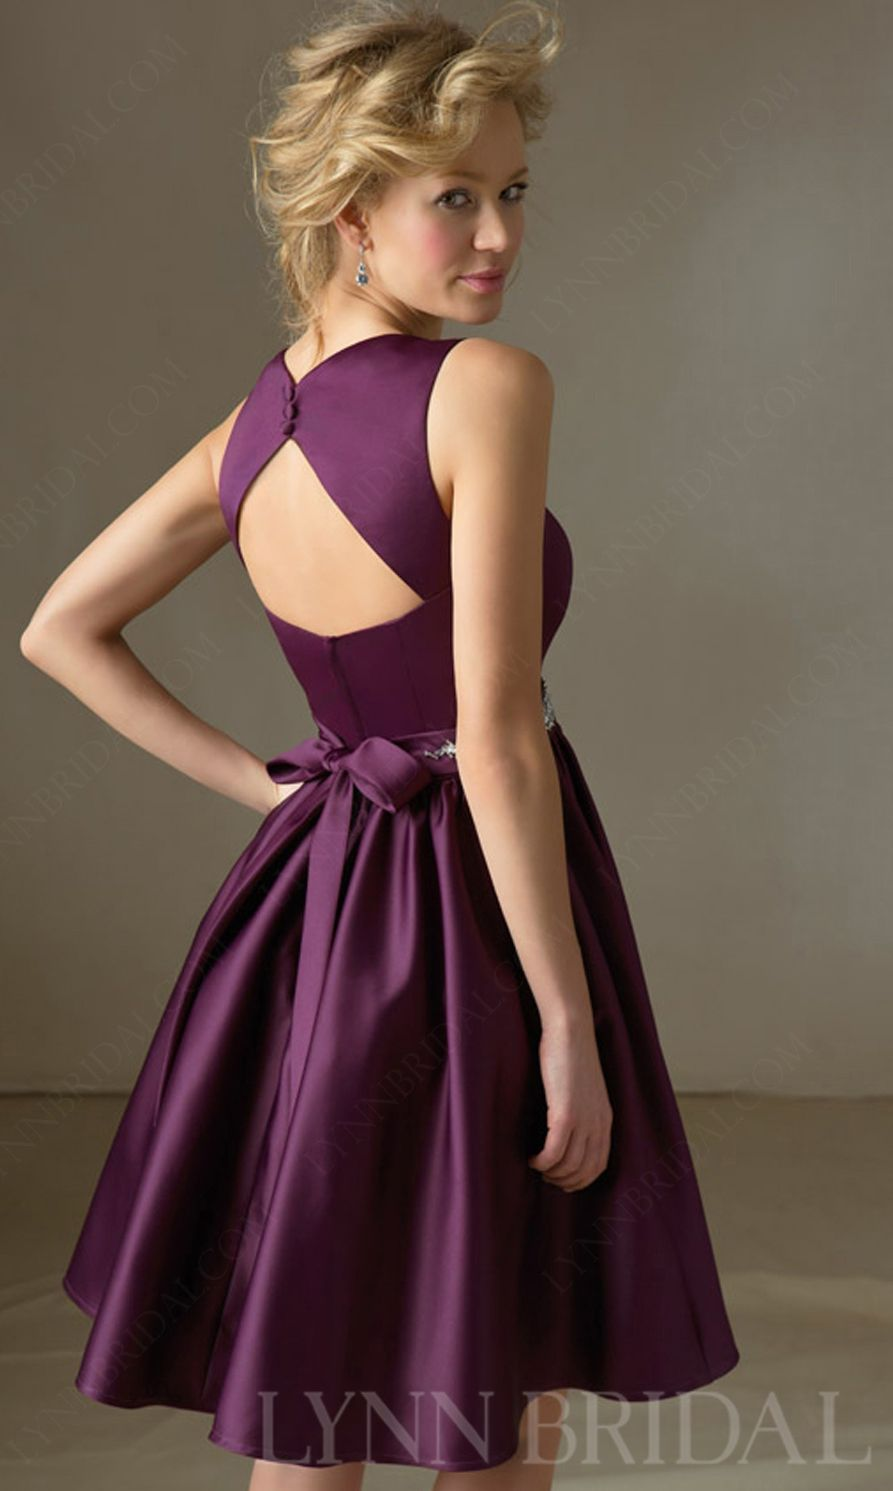 Bridesmaid dresses bridesmaid dress open back bridesmaid dresses